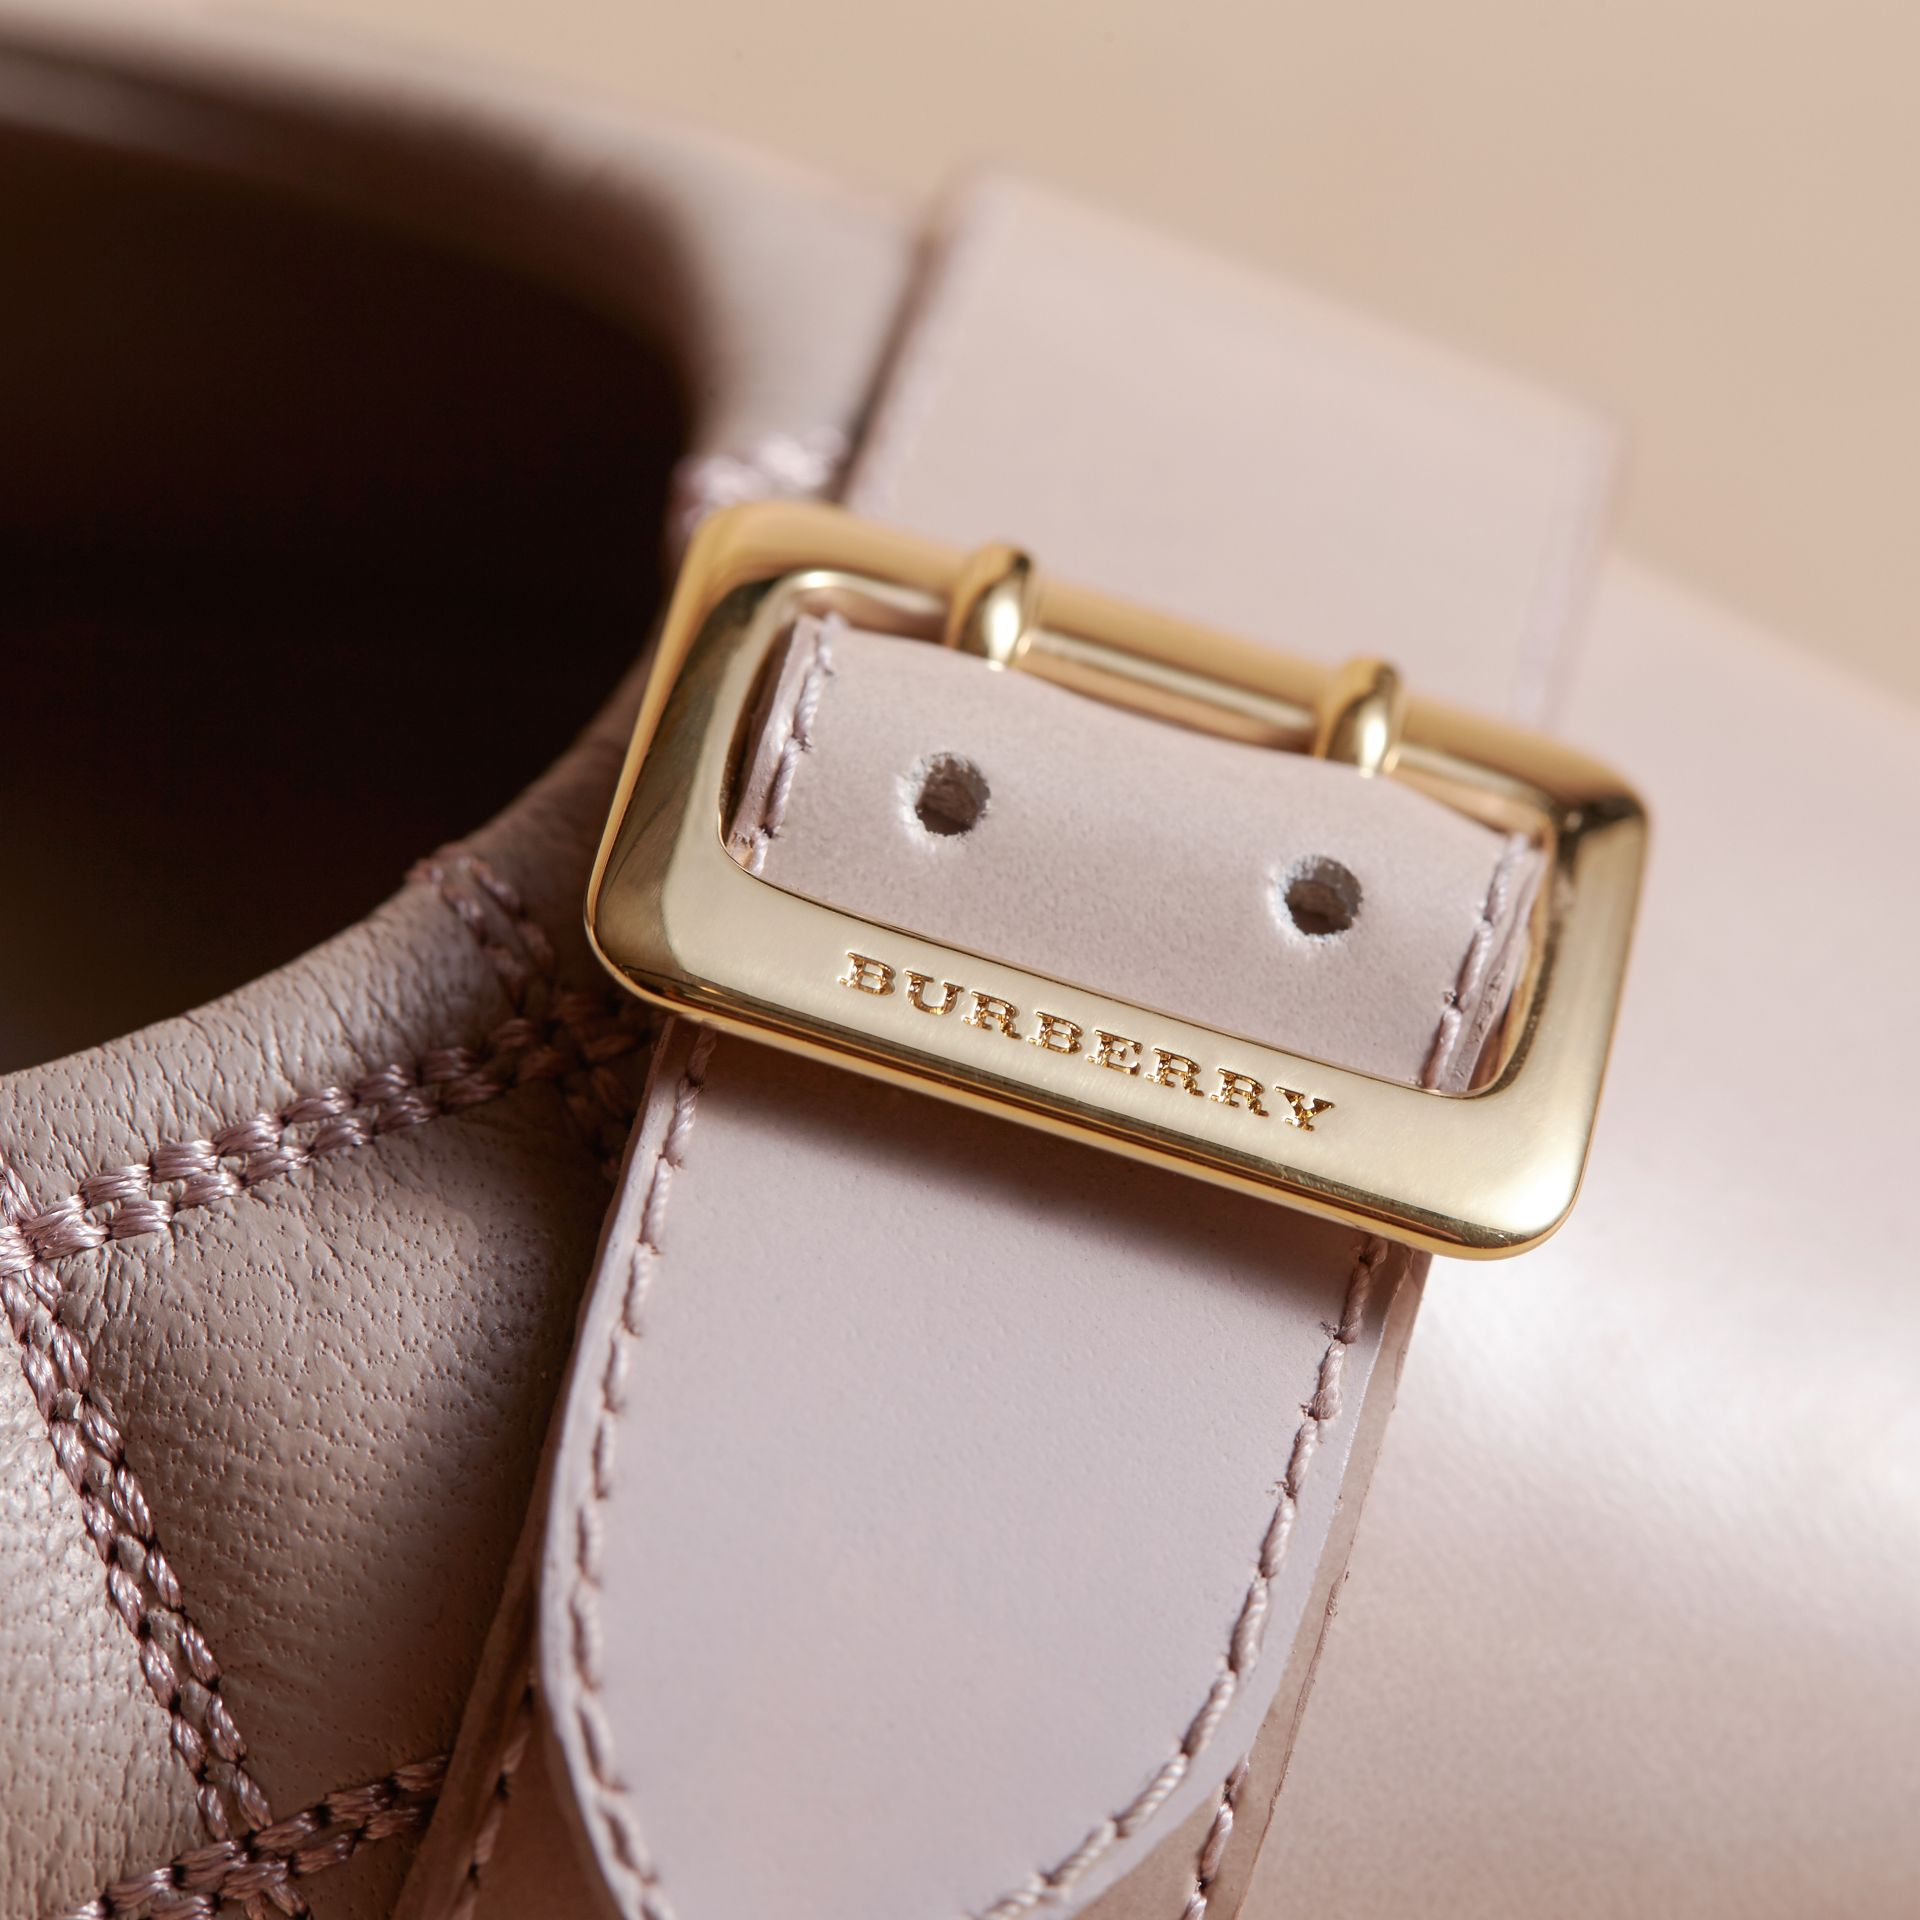 Buckle Detail Quilted Lambskin Leather Ballerinas in Ivory Pink - Women | Burberry Singapore - gallery image 2